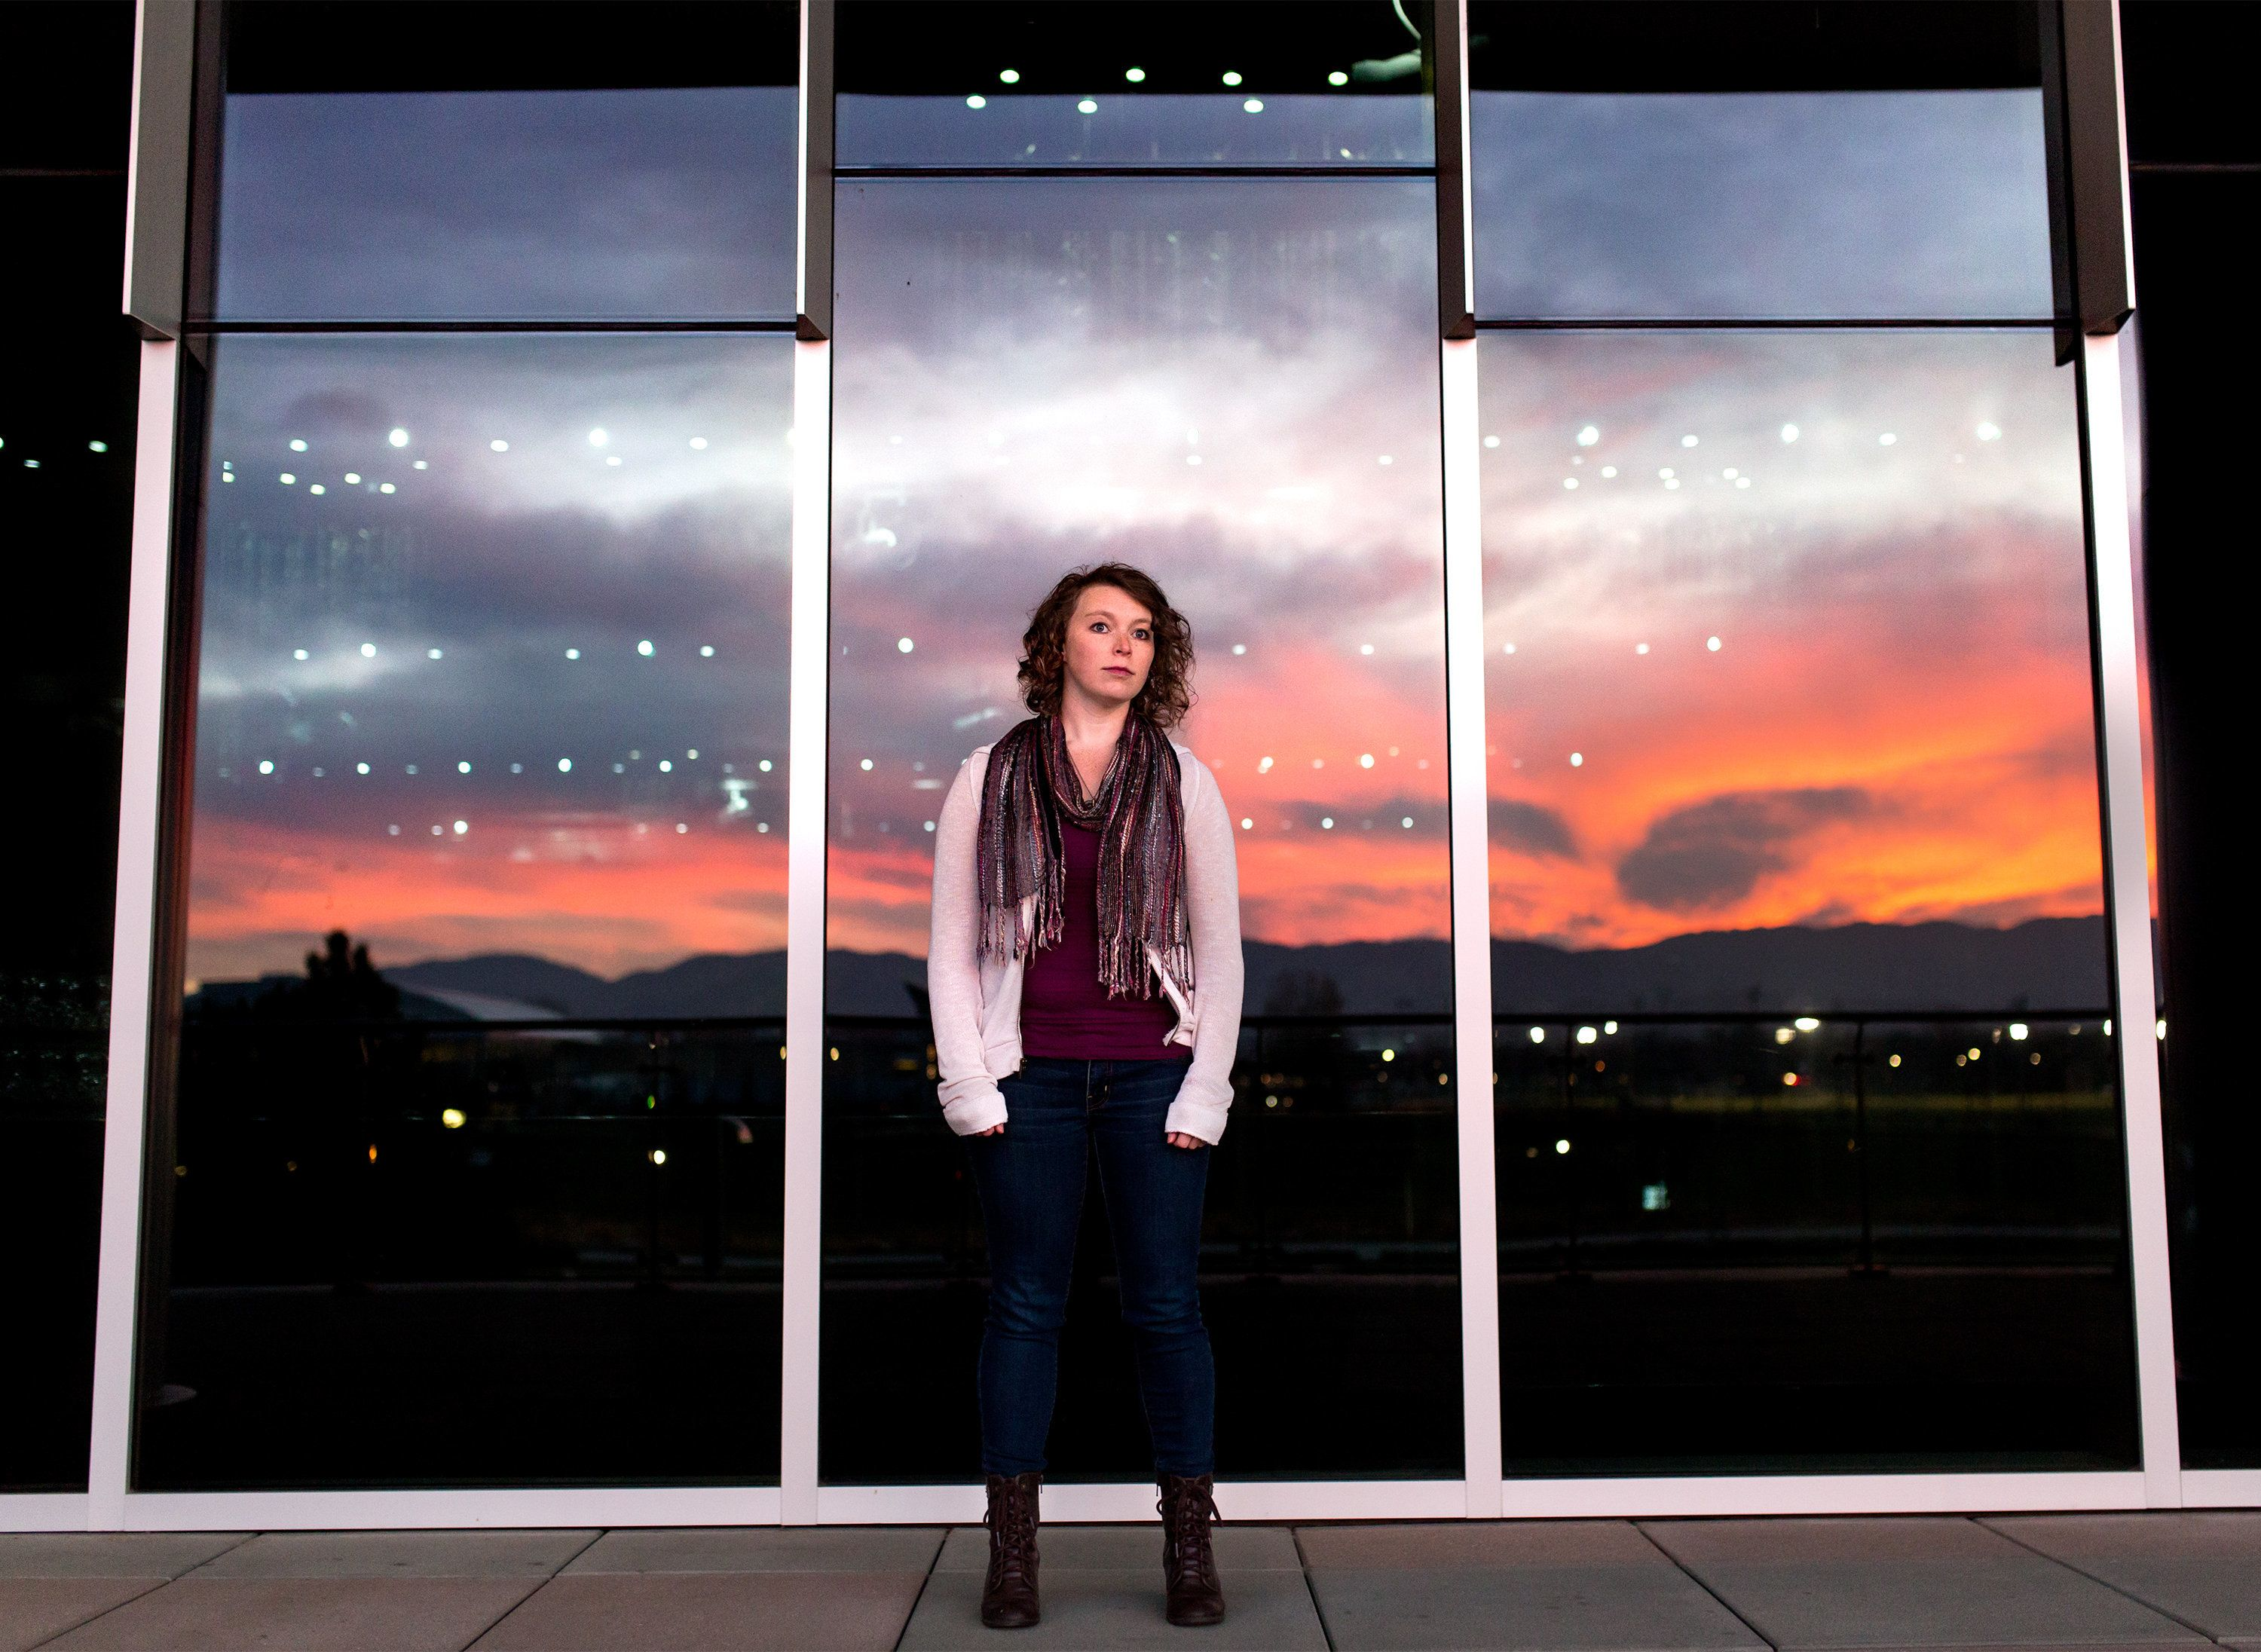 Chelsea Sobolik poses for a portrait at Colorado State University in Fort Collins, Colo. on Nov. 10, 2017. Sobolik is a survivor of the Aurora Theatre Shooting in 2012. (Photo by Autumn Parry)